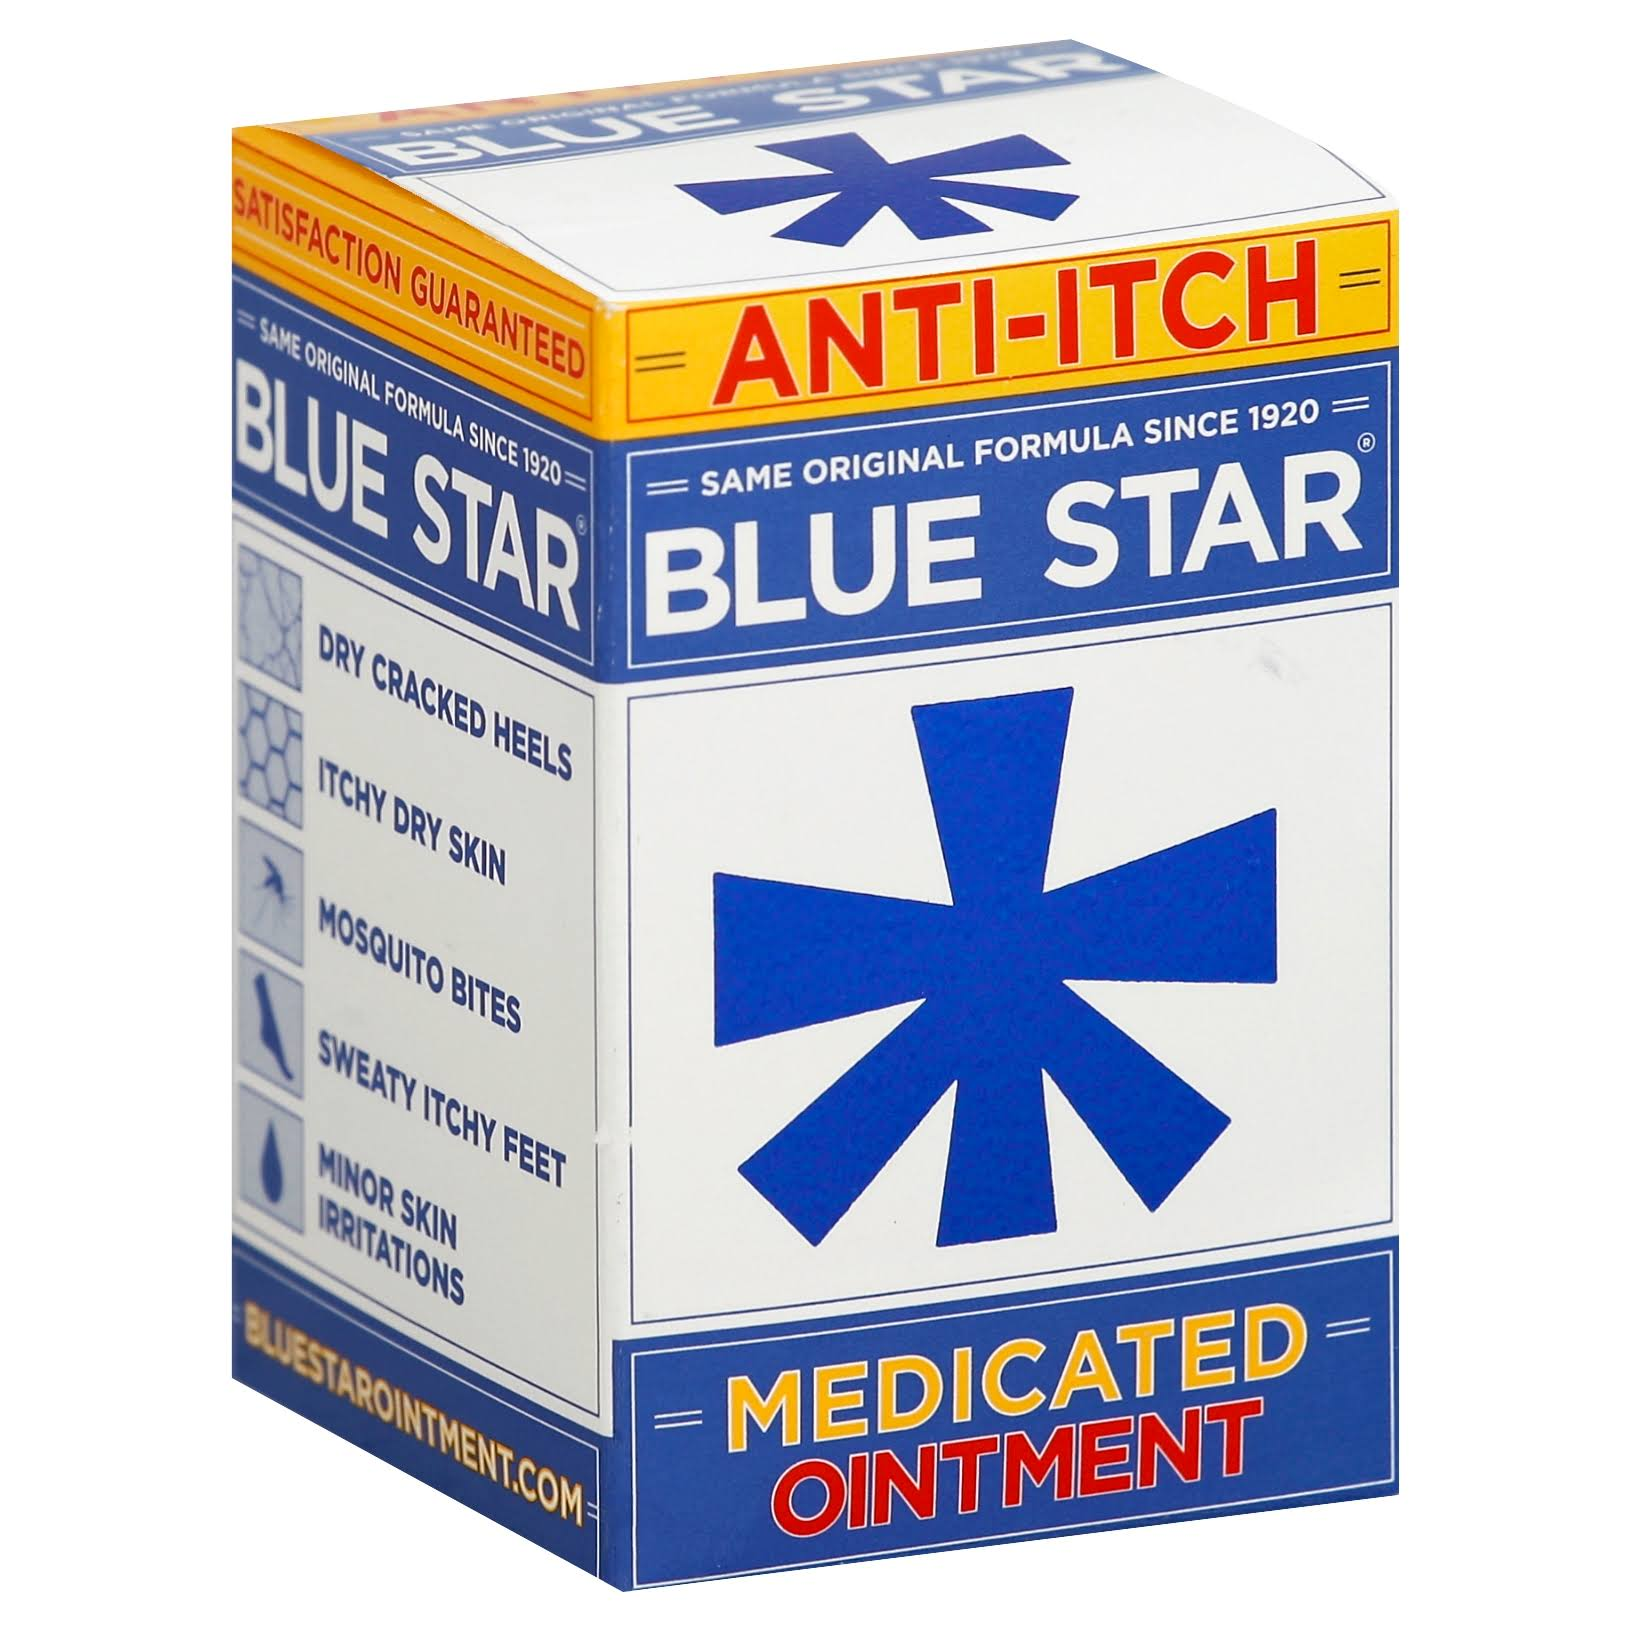 Blue Star Anti Itch Medicated Ointment - 2oz